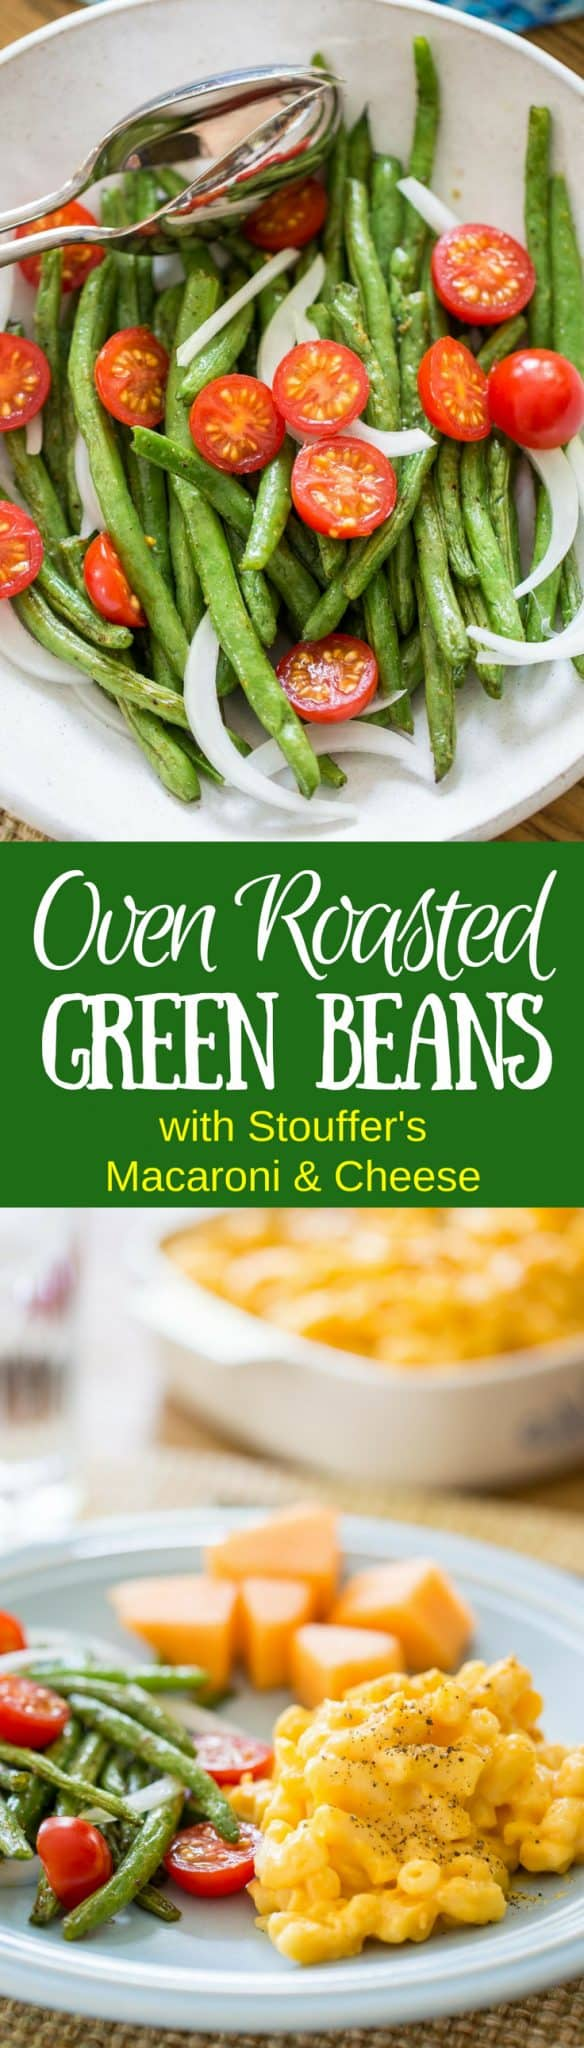 #sponsored Oven Roasted Green Beans ~ served with onions, tomatoes and @Stouffer's Macaroni and Cheese for a balanced and nutritious plate to accommodate your busy lifestyle! #BalanceYourPlate #CLVR https://www.pinterest.com/stouffers/